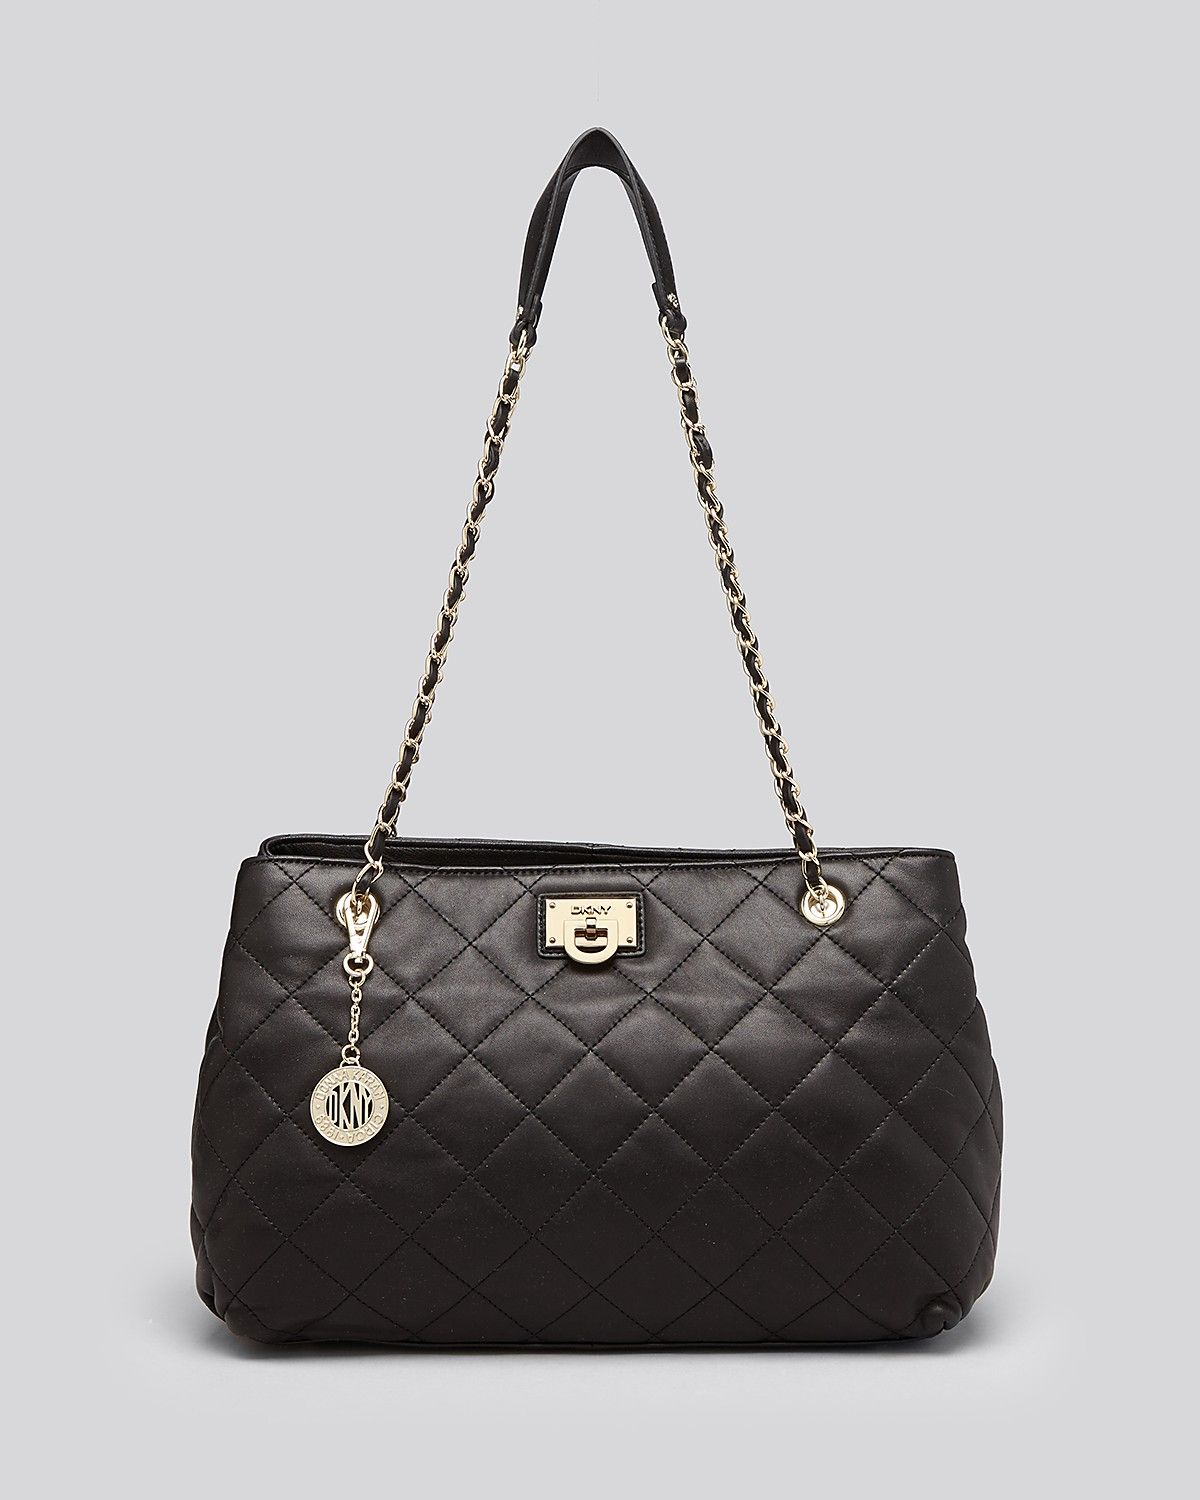 4d31e67ba671 DKNY Tote - Gansevoort Quilted Nappa Shopper